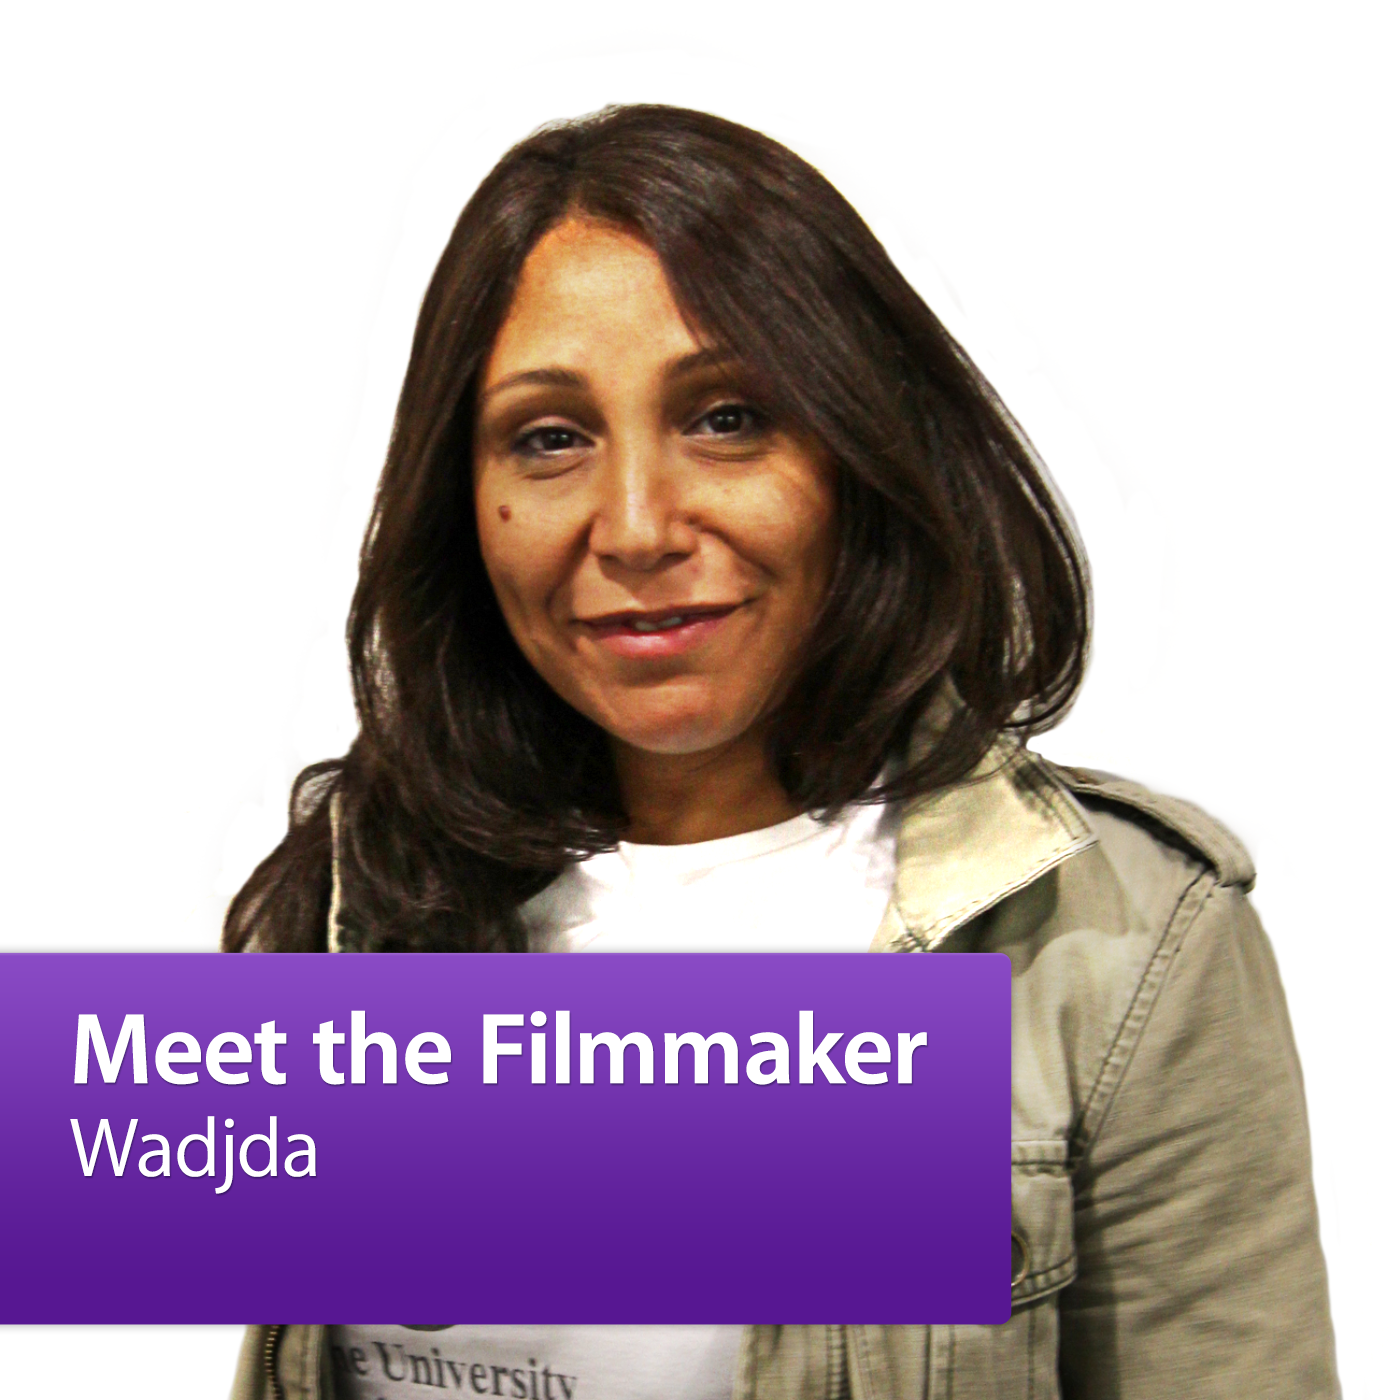 Wadjda: Meet the Filmmaker